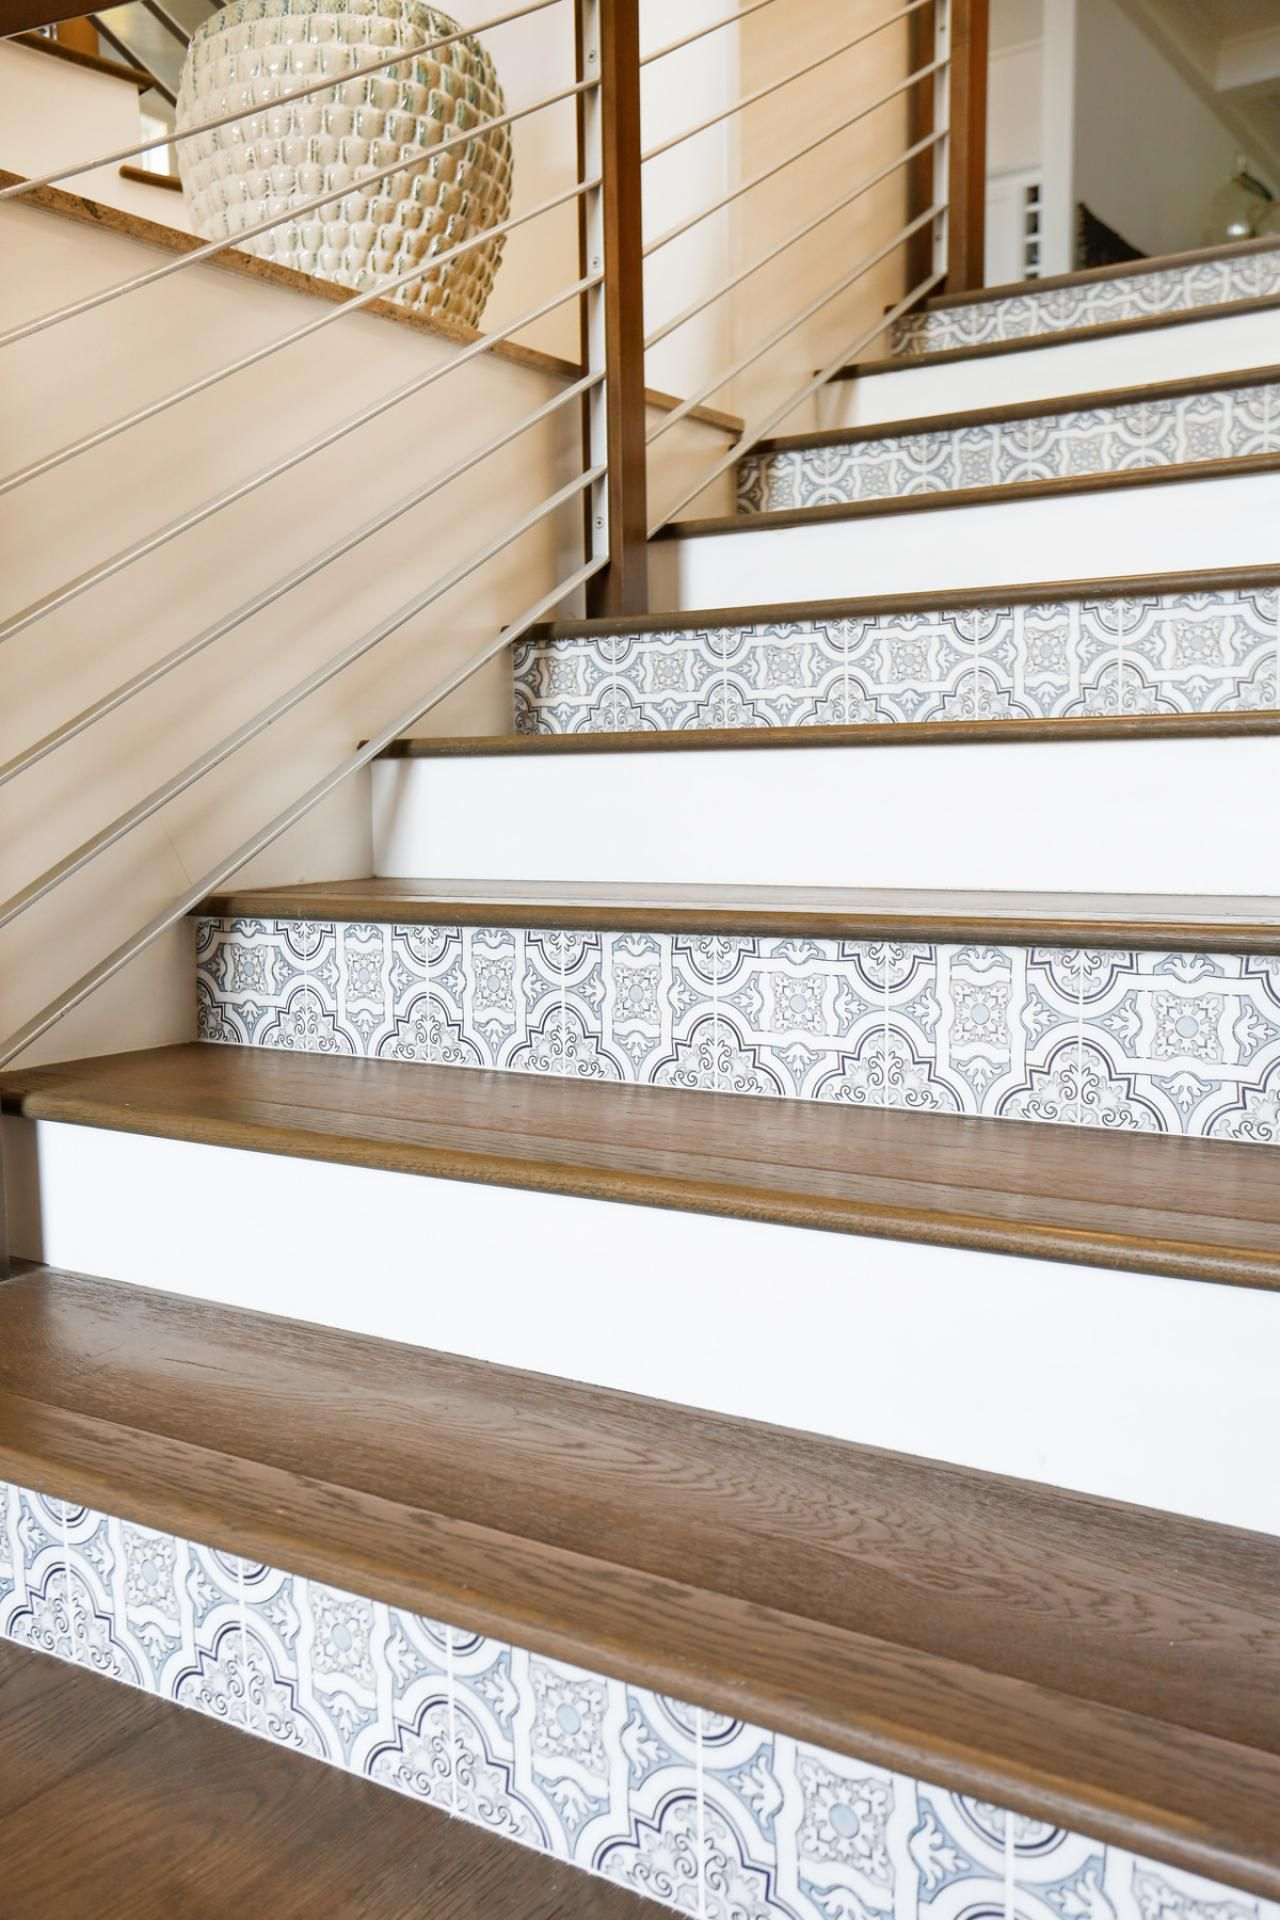 Find The Best Of Blackband Design From HGTV